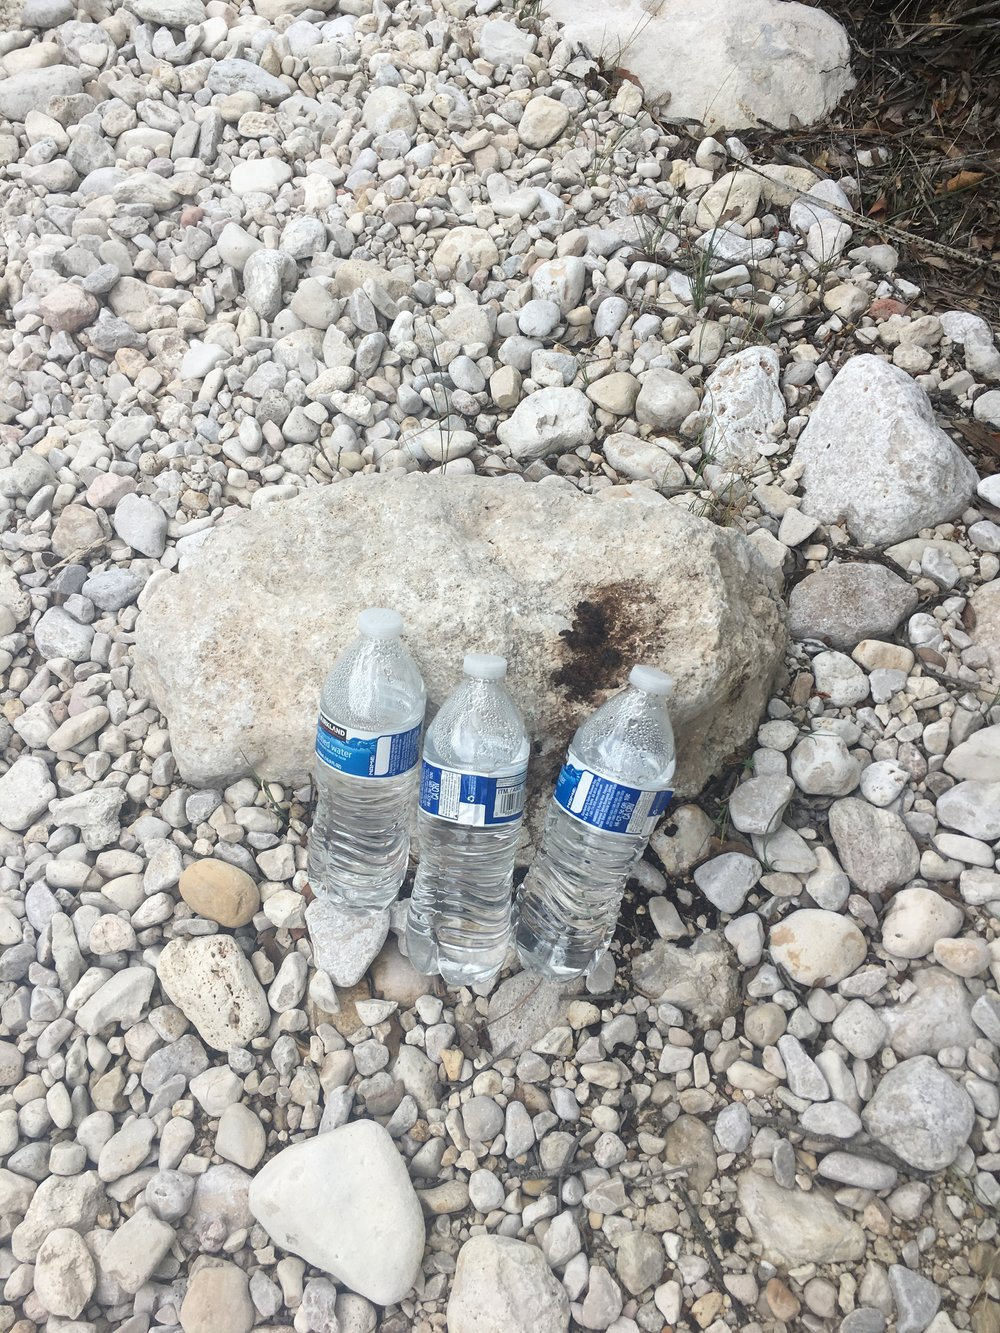 Holy moly, it's THREE FILLED water bottles!